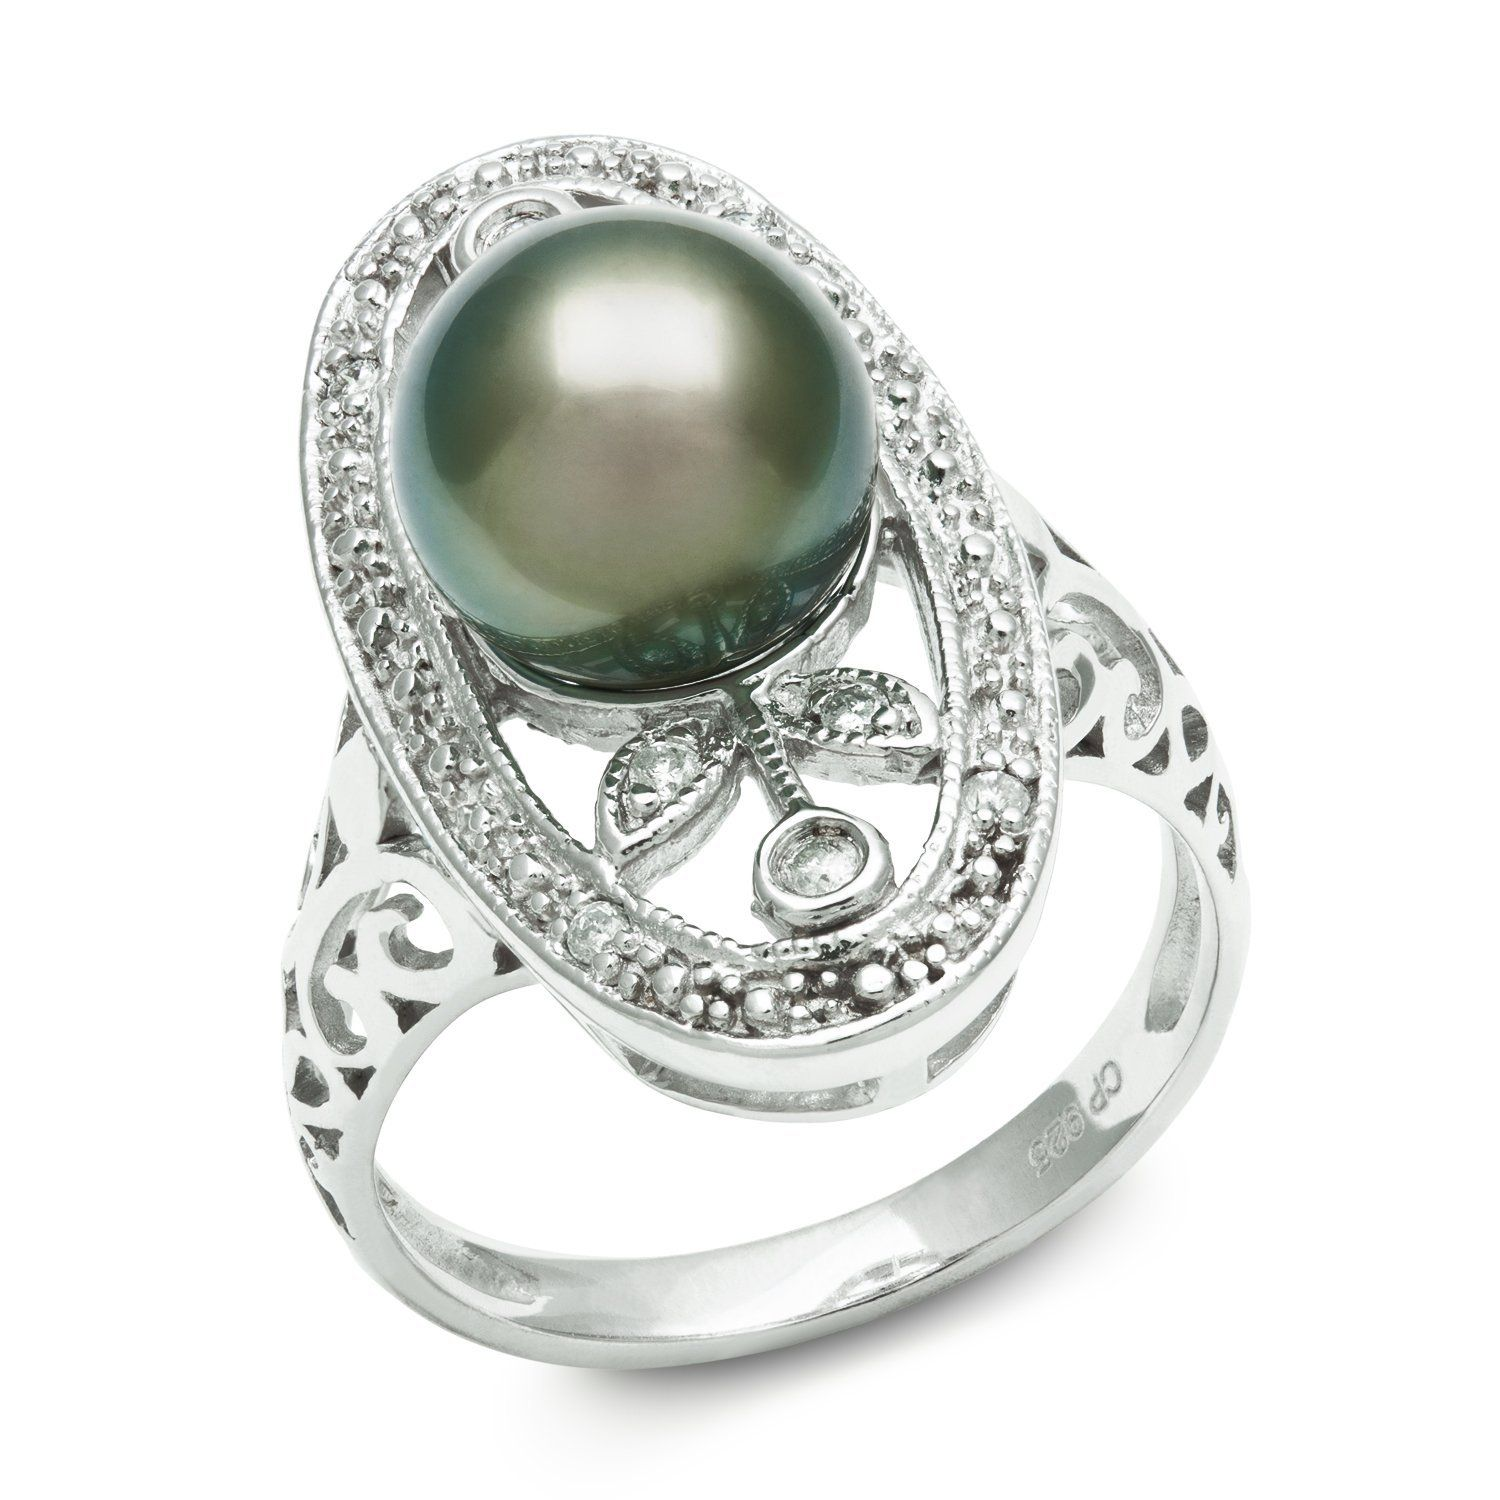 tahitian black pearl engagement ring just love the. Black Bedroom Furniture Sets. Home Design Ideas